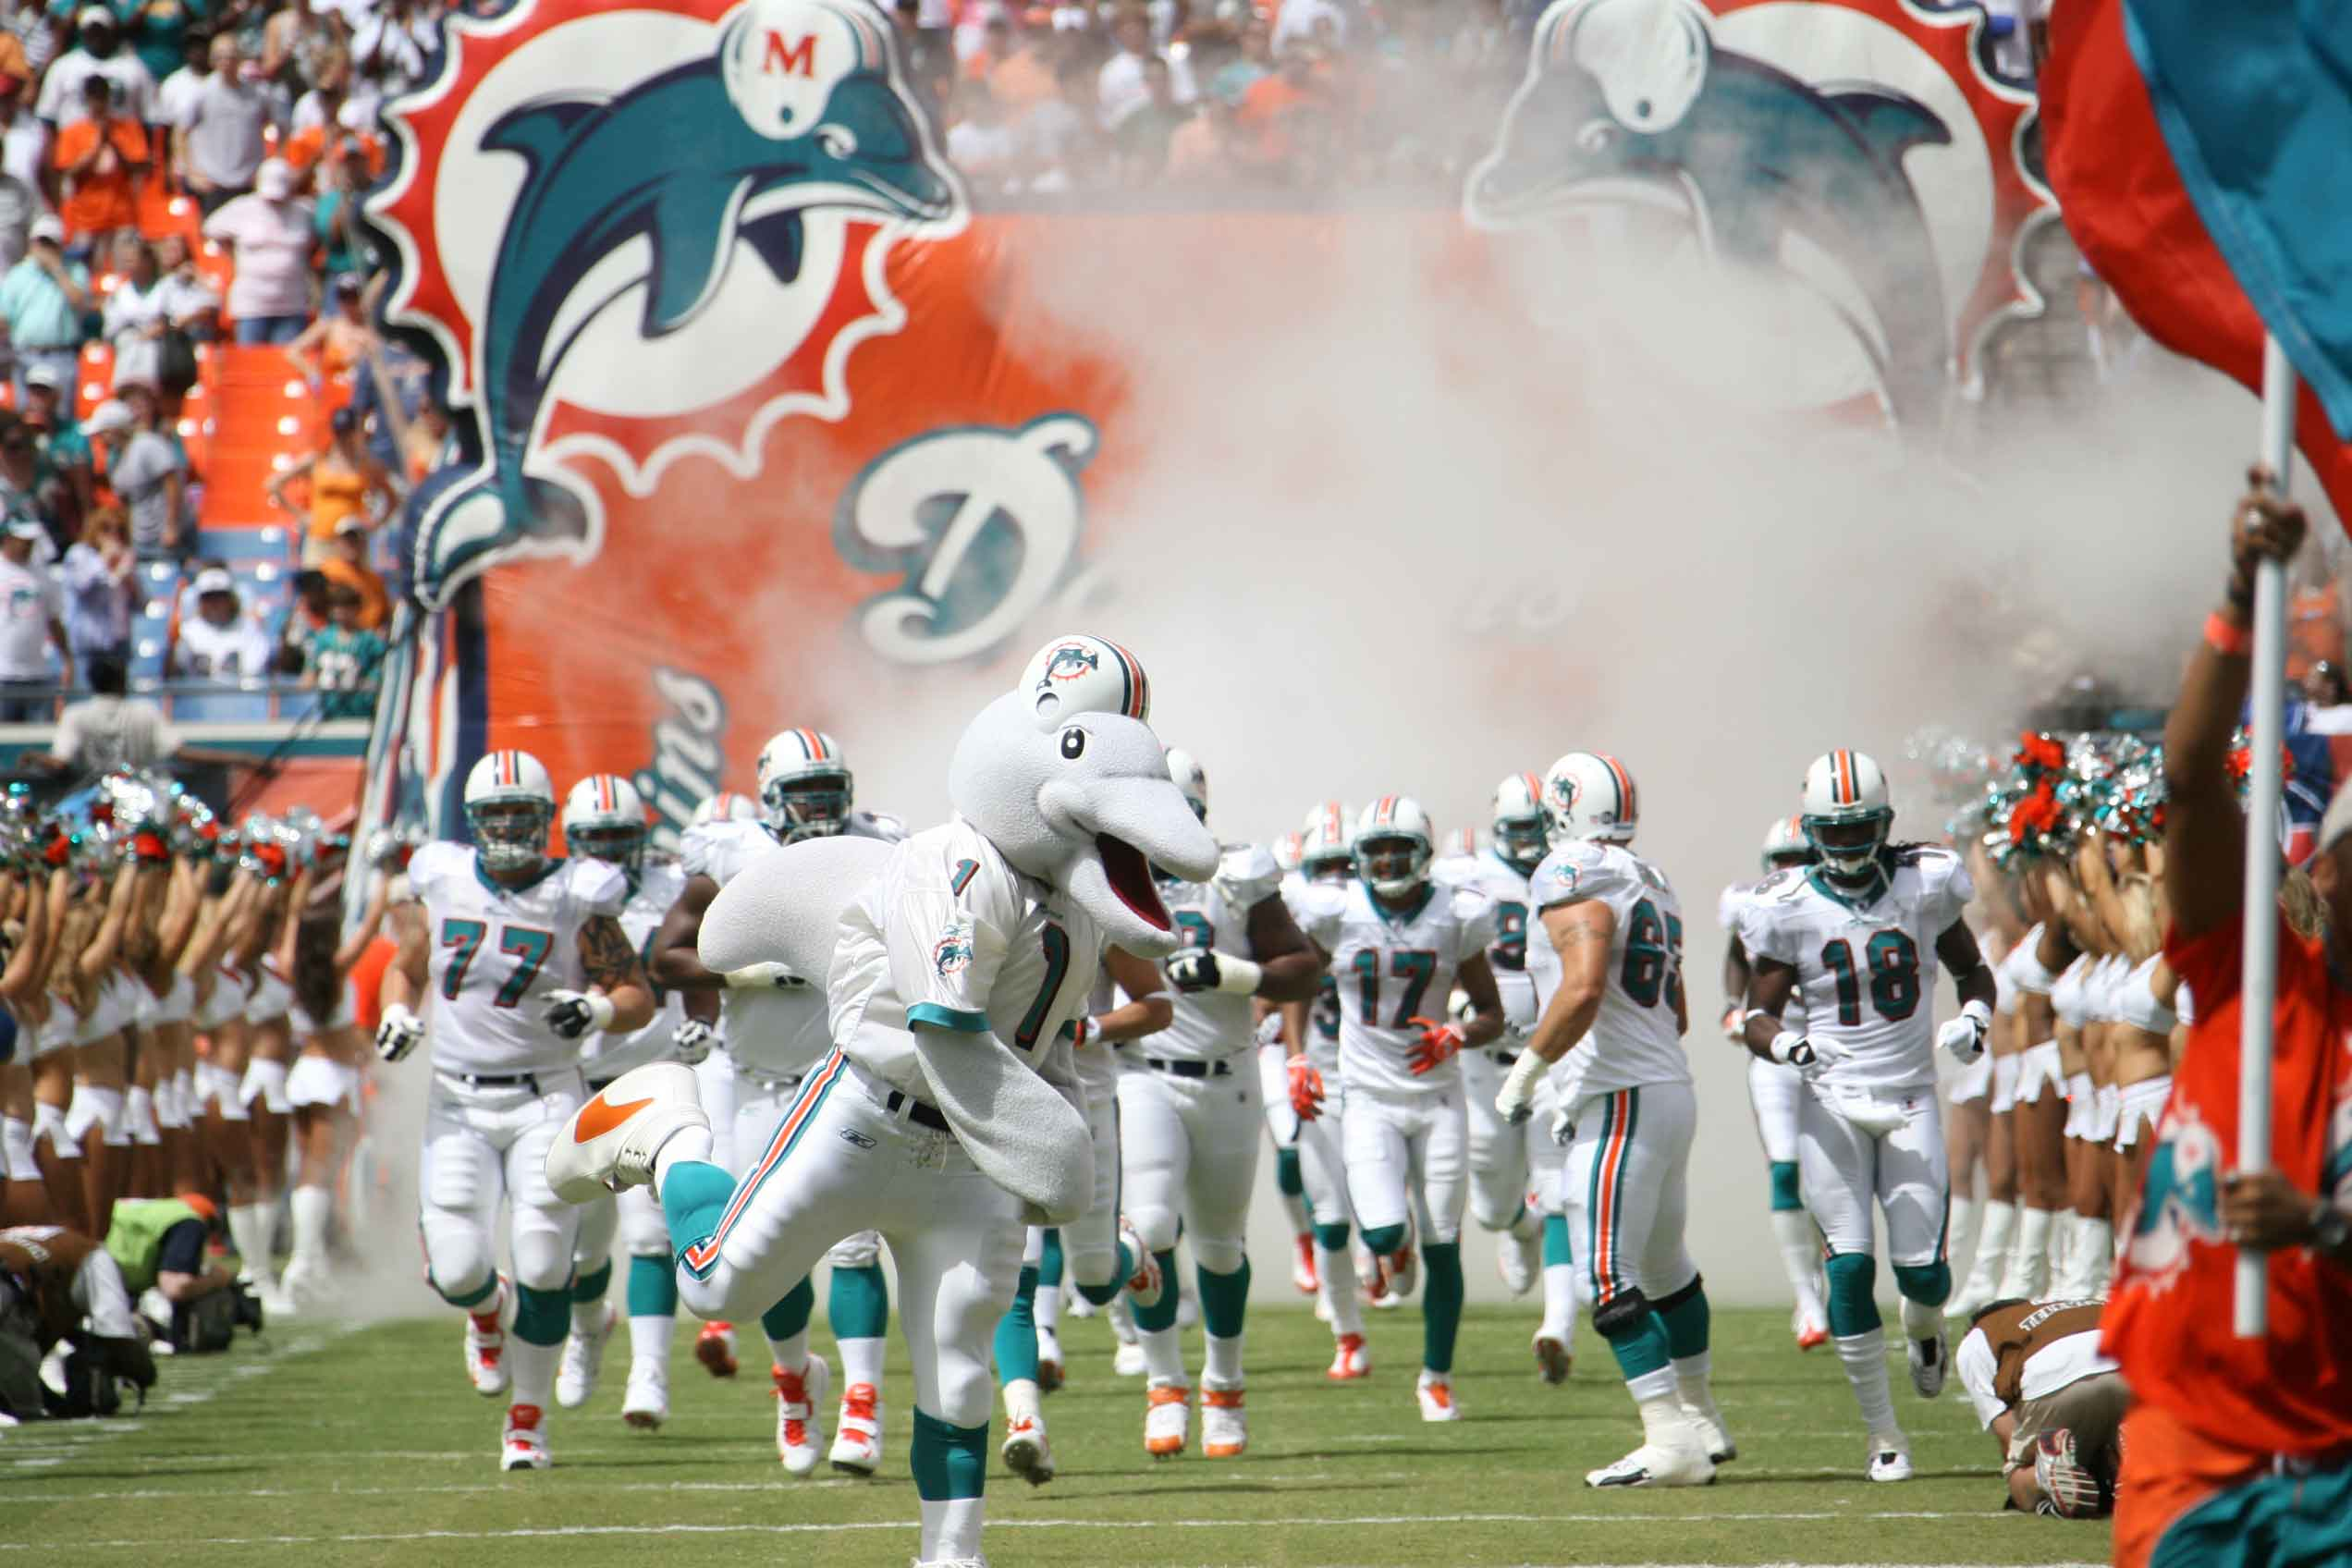 Miami Dolphins owner All our players will be standing for national anthem